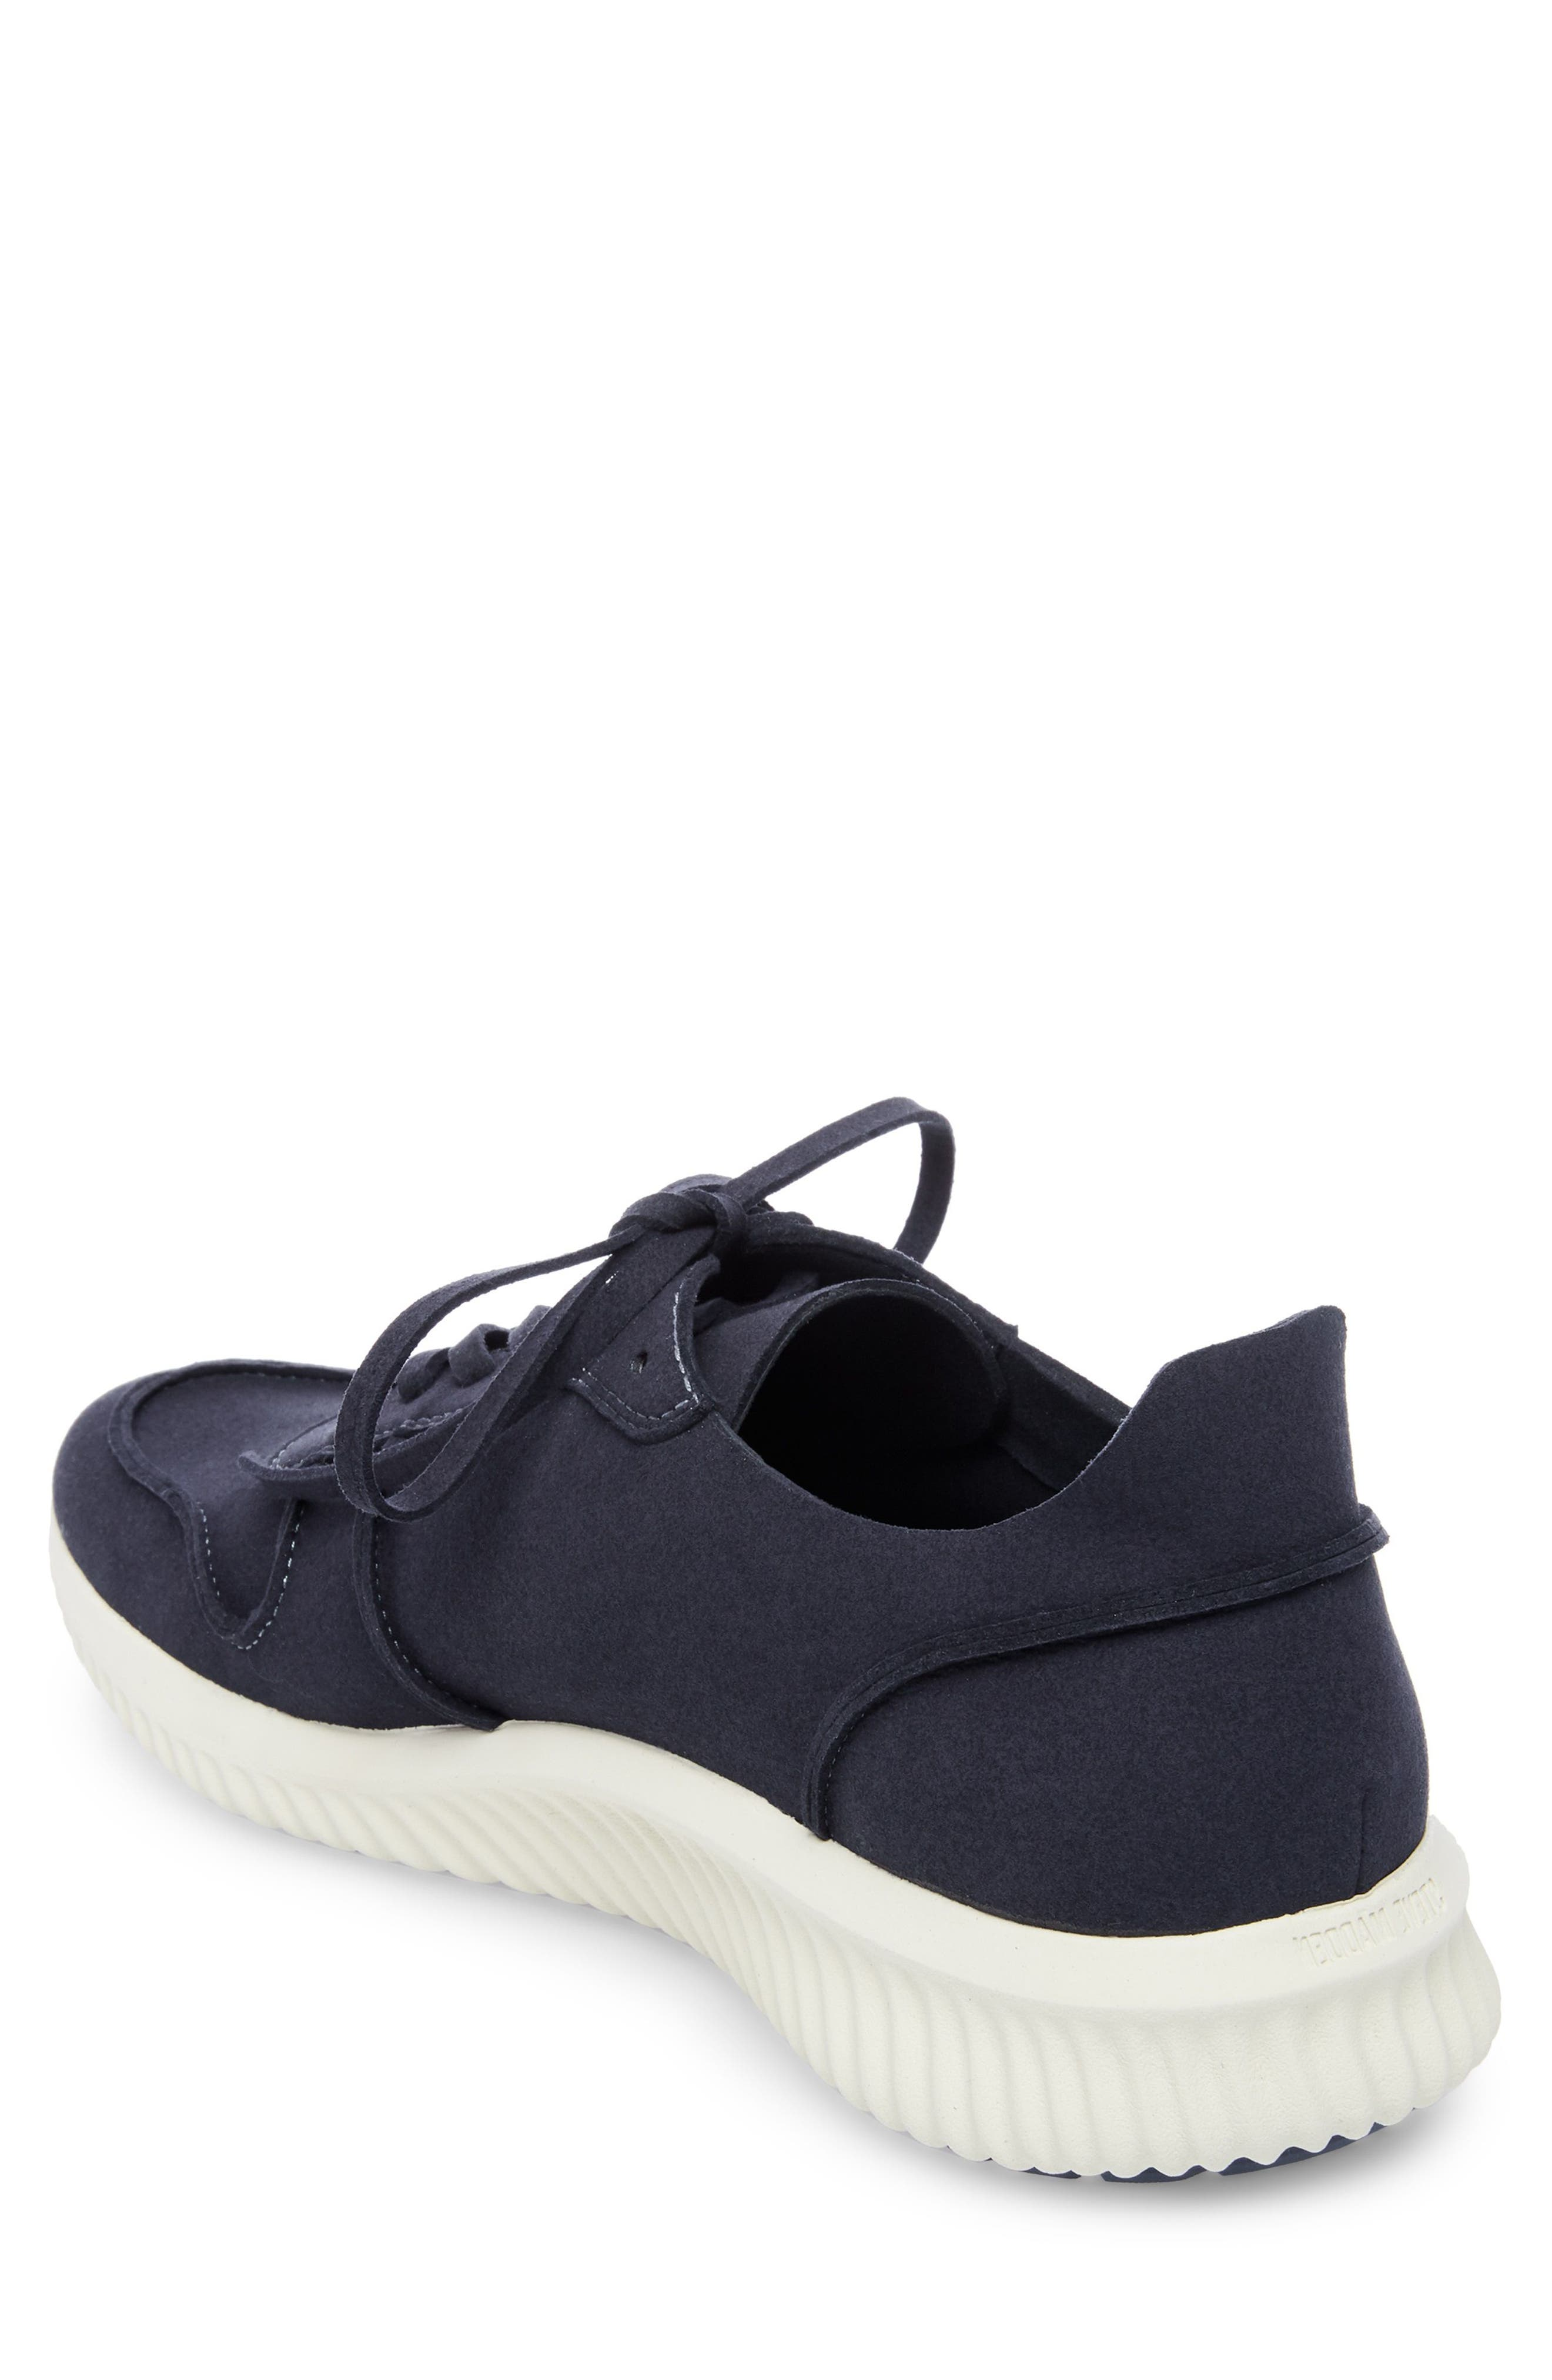 Rolf Low Top Sneaker,                             Alternate thumbnail 2, color,                             Navy Leather